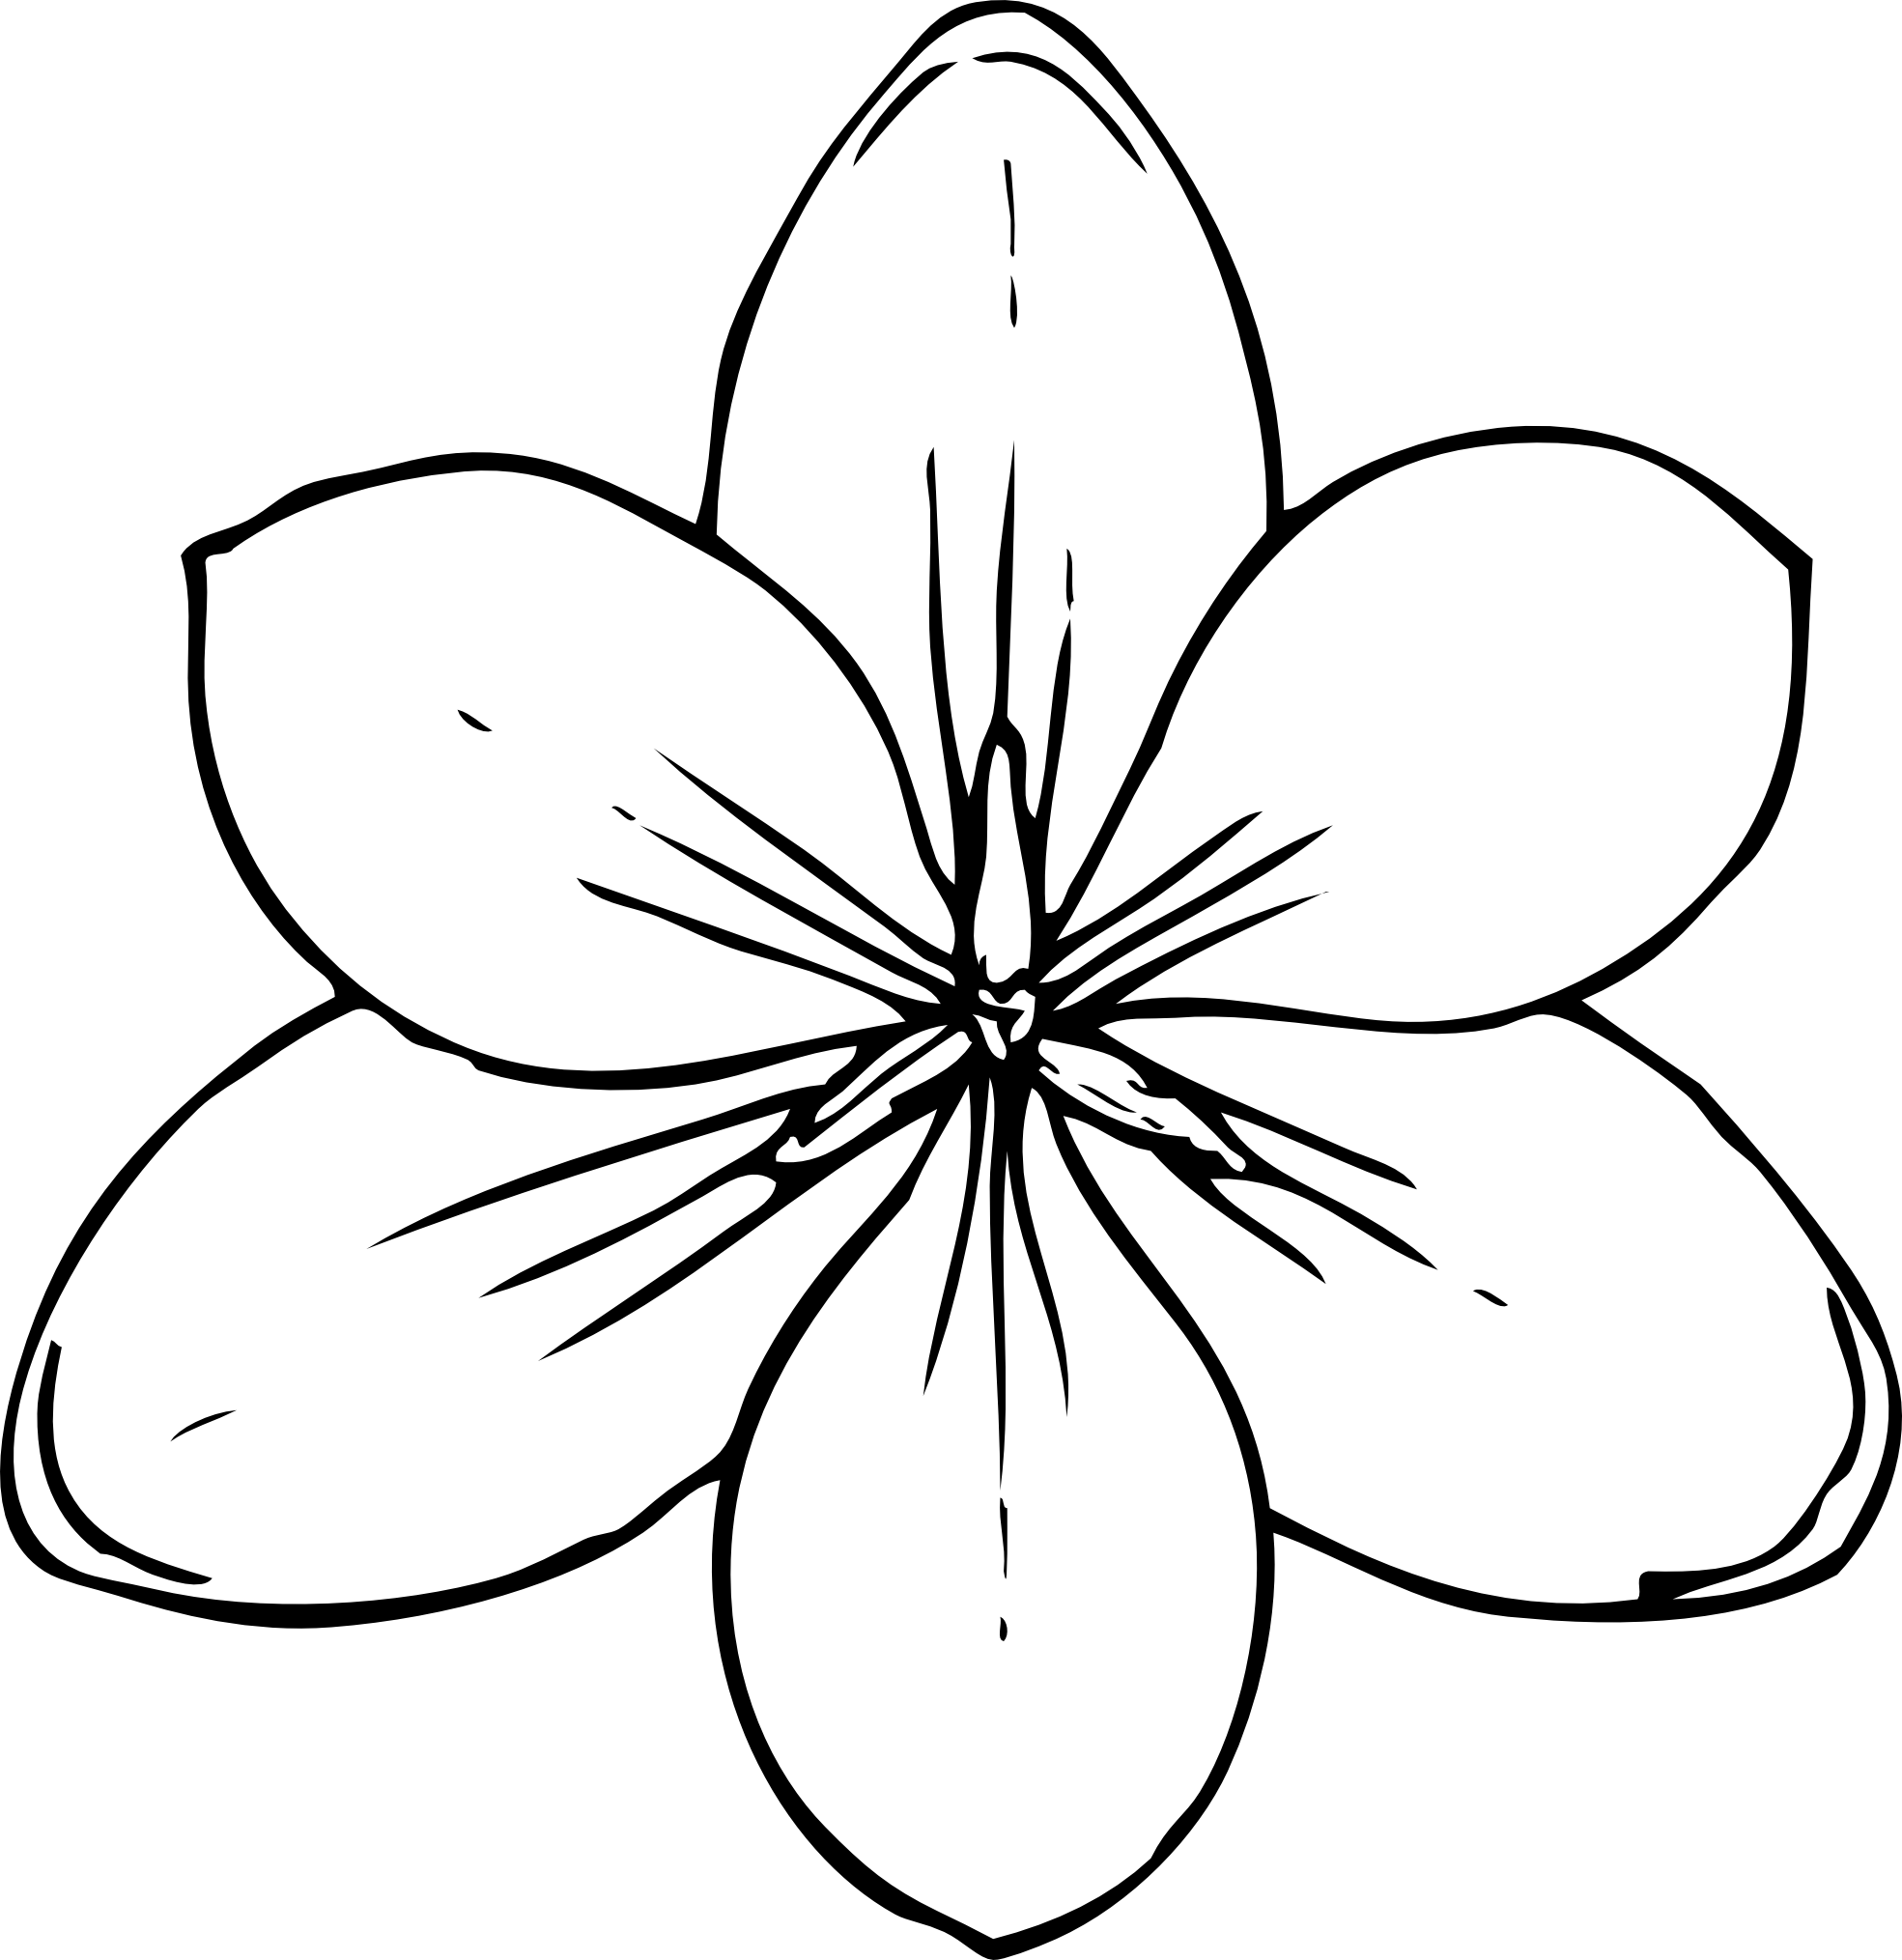 Jasmine flower clipart clipart royalty free stock Line images of flowers - ClipartFest clipart royalty free stock